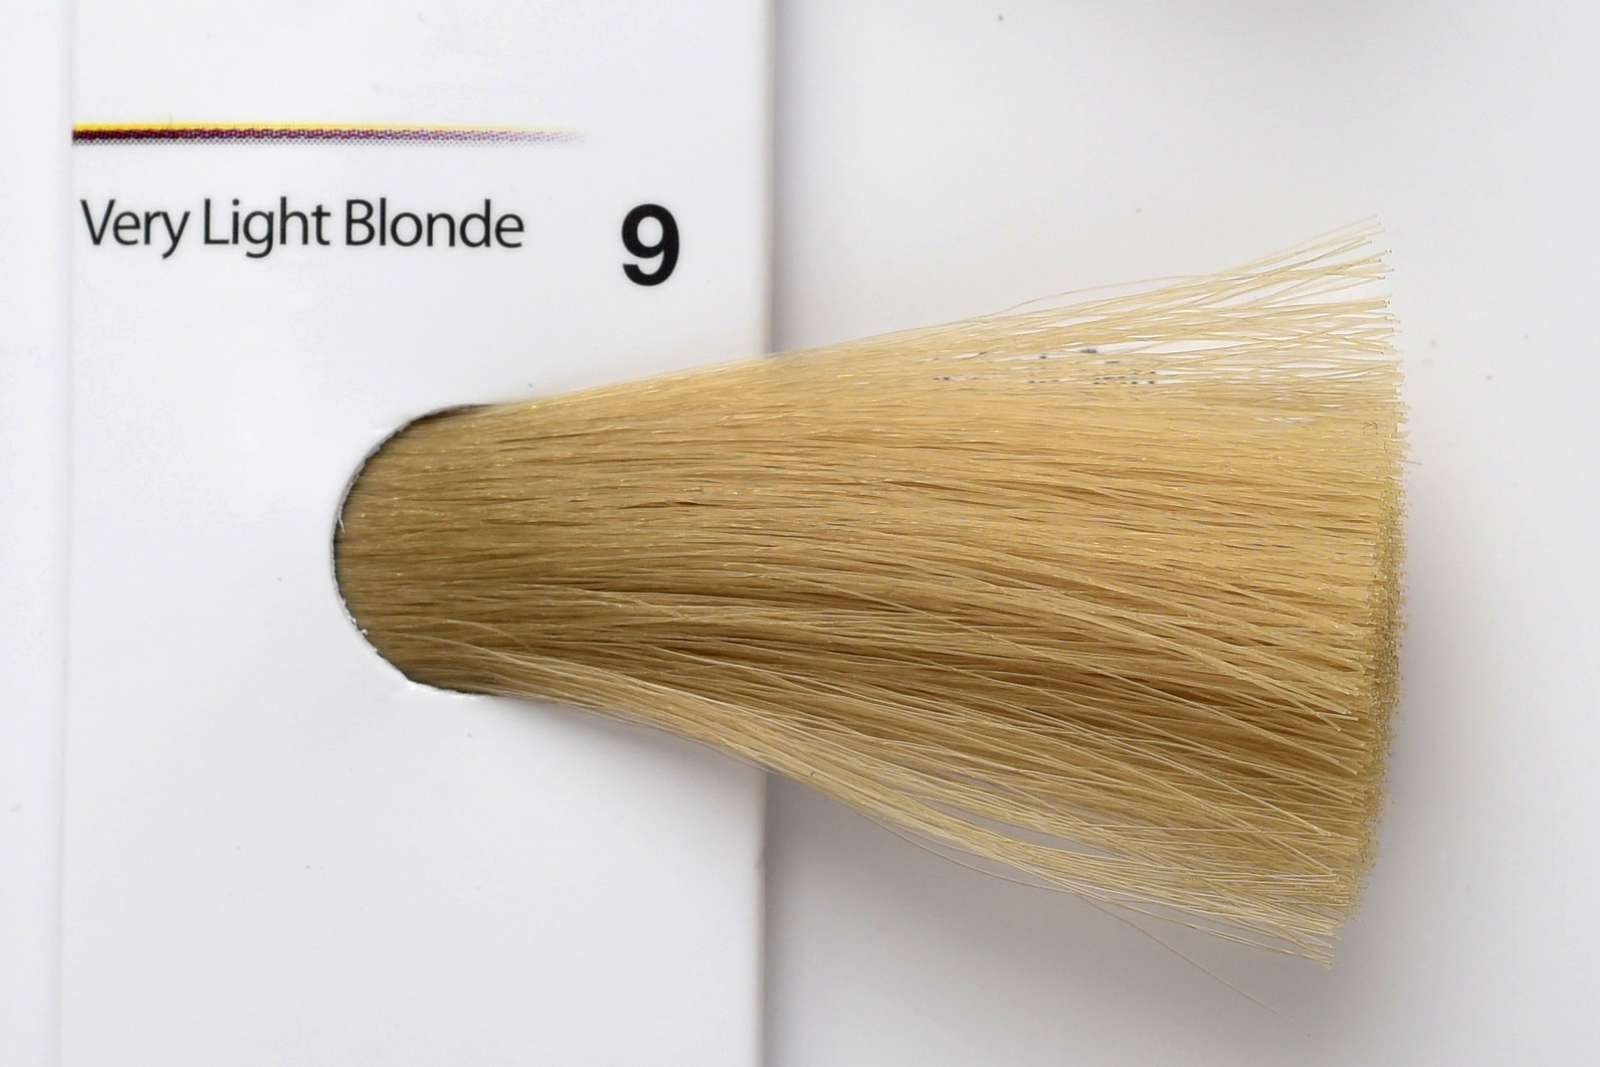 9 - Very Light Blonde-swatch